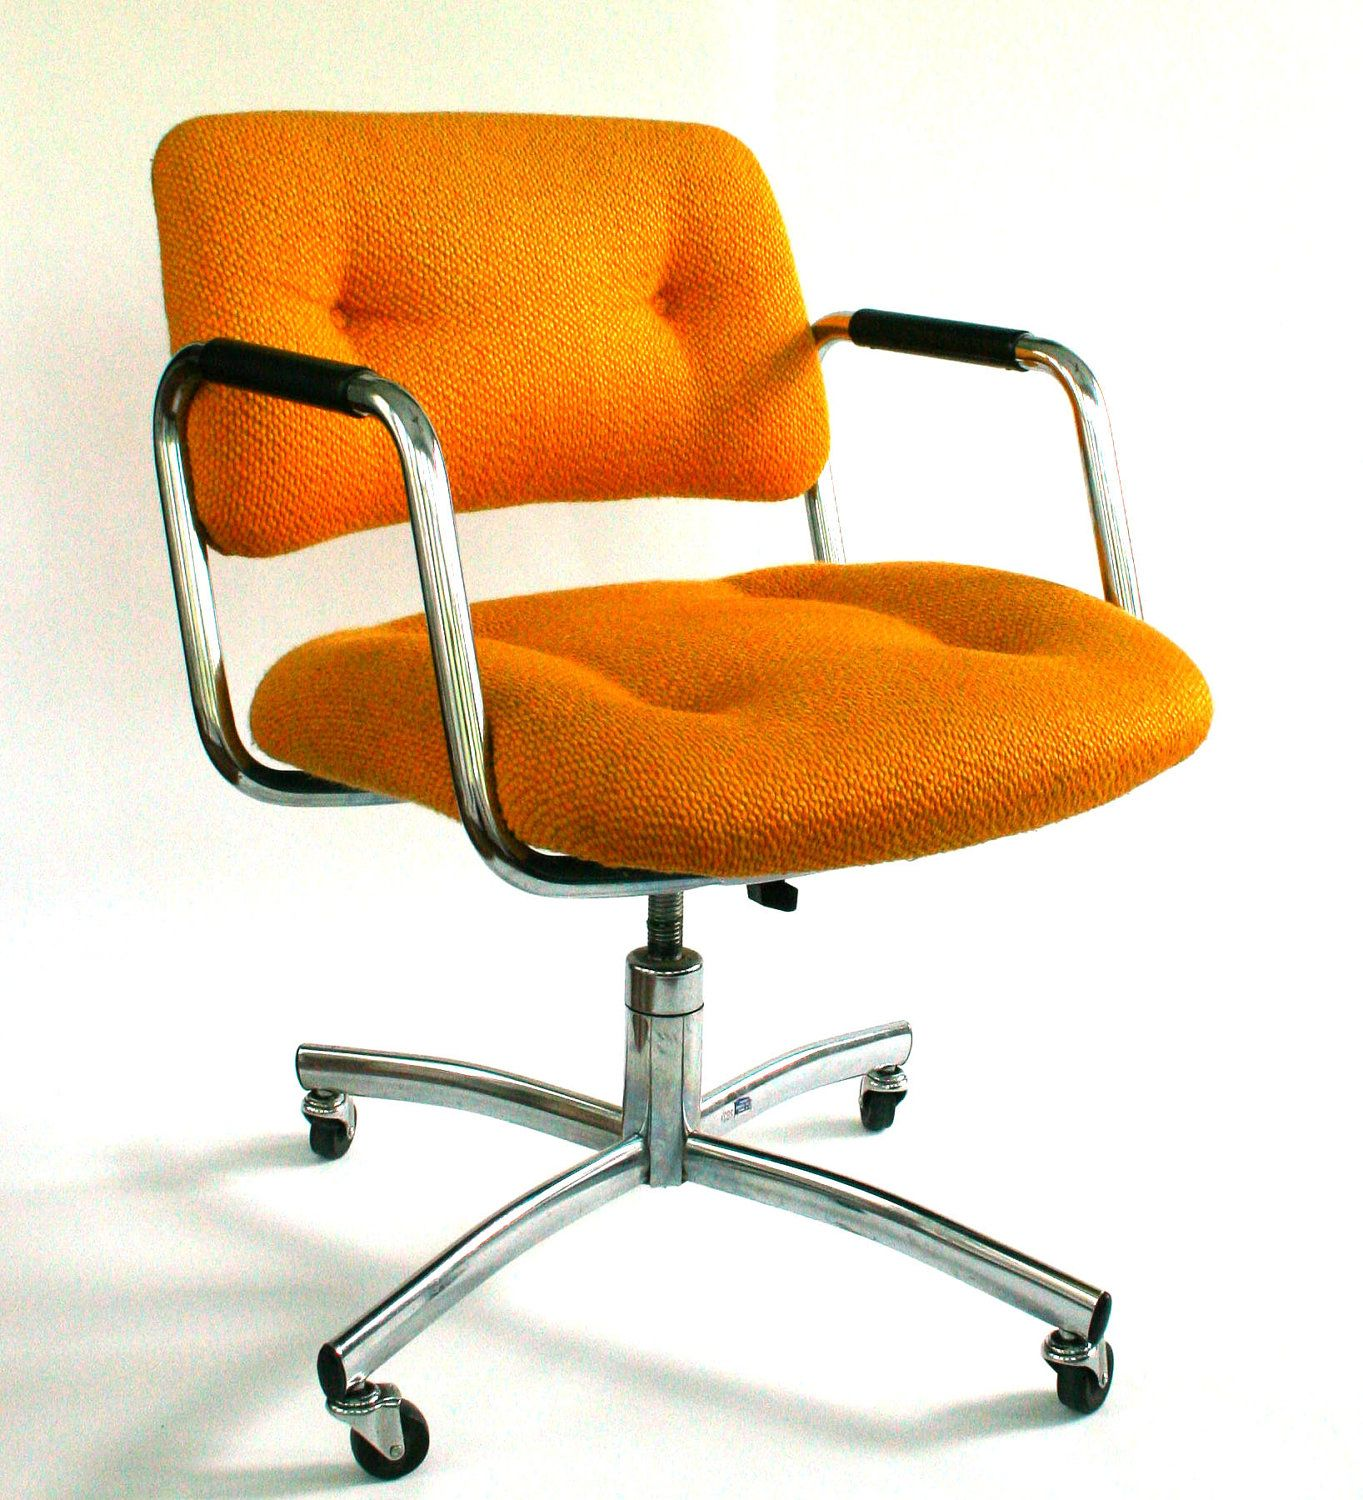 Swivel Chair Mustard Yellow Double Rocker Cushions Vintage Office Desk Mid Century Upholstered